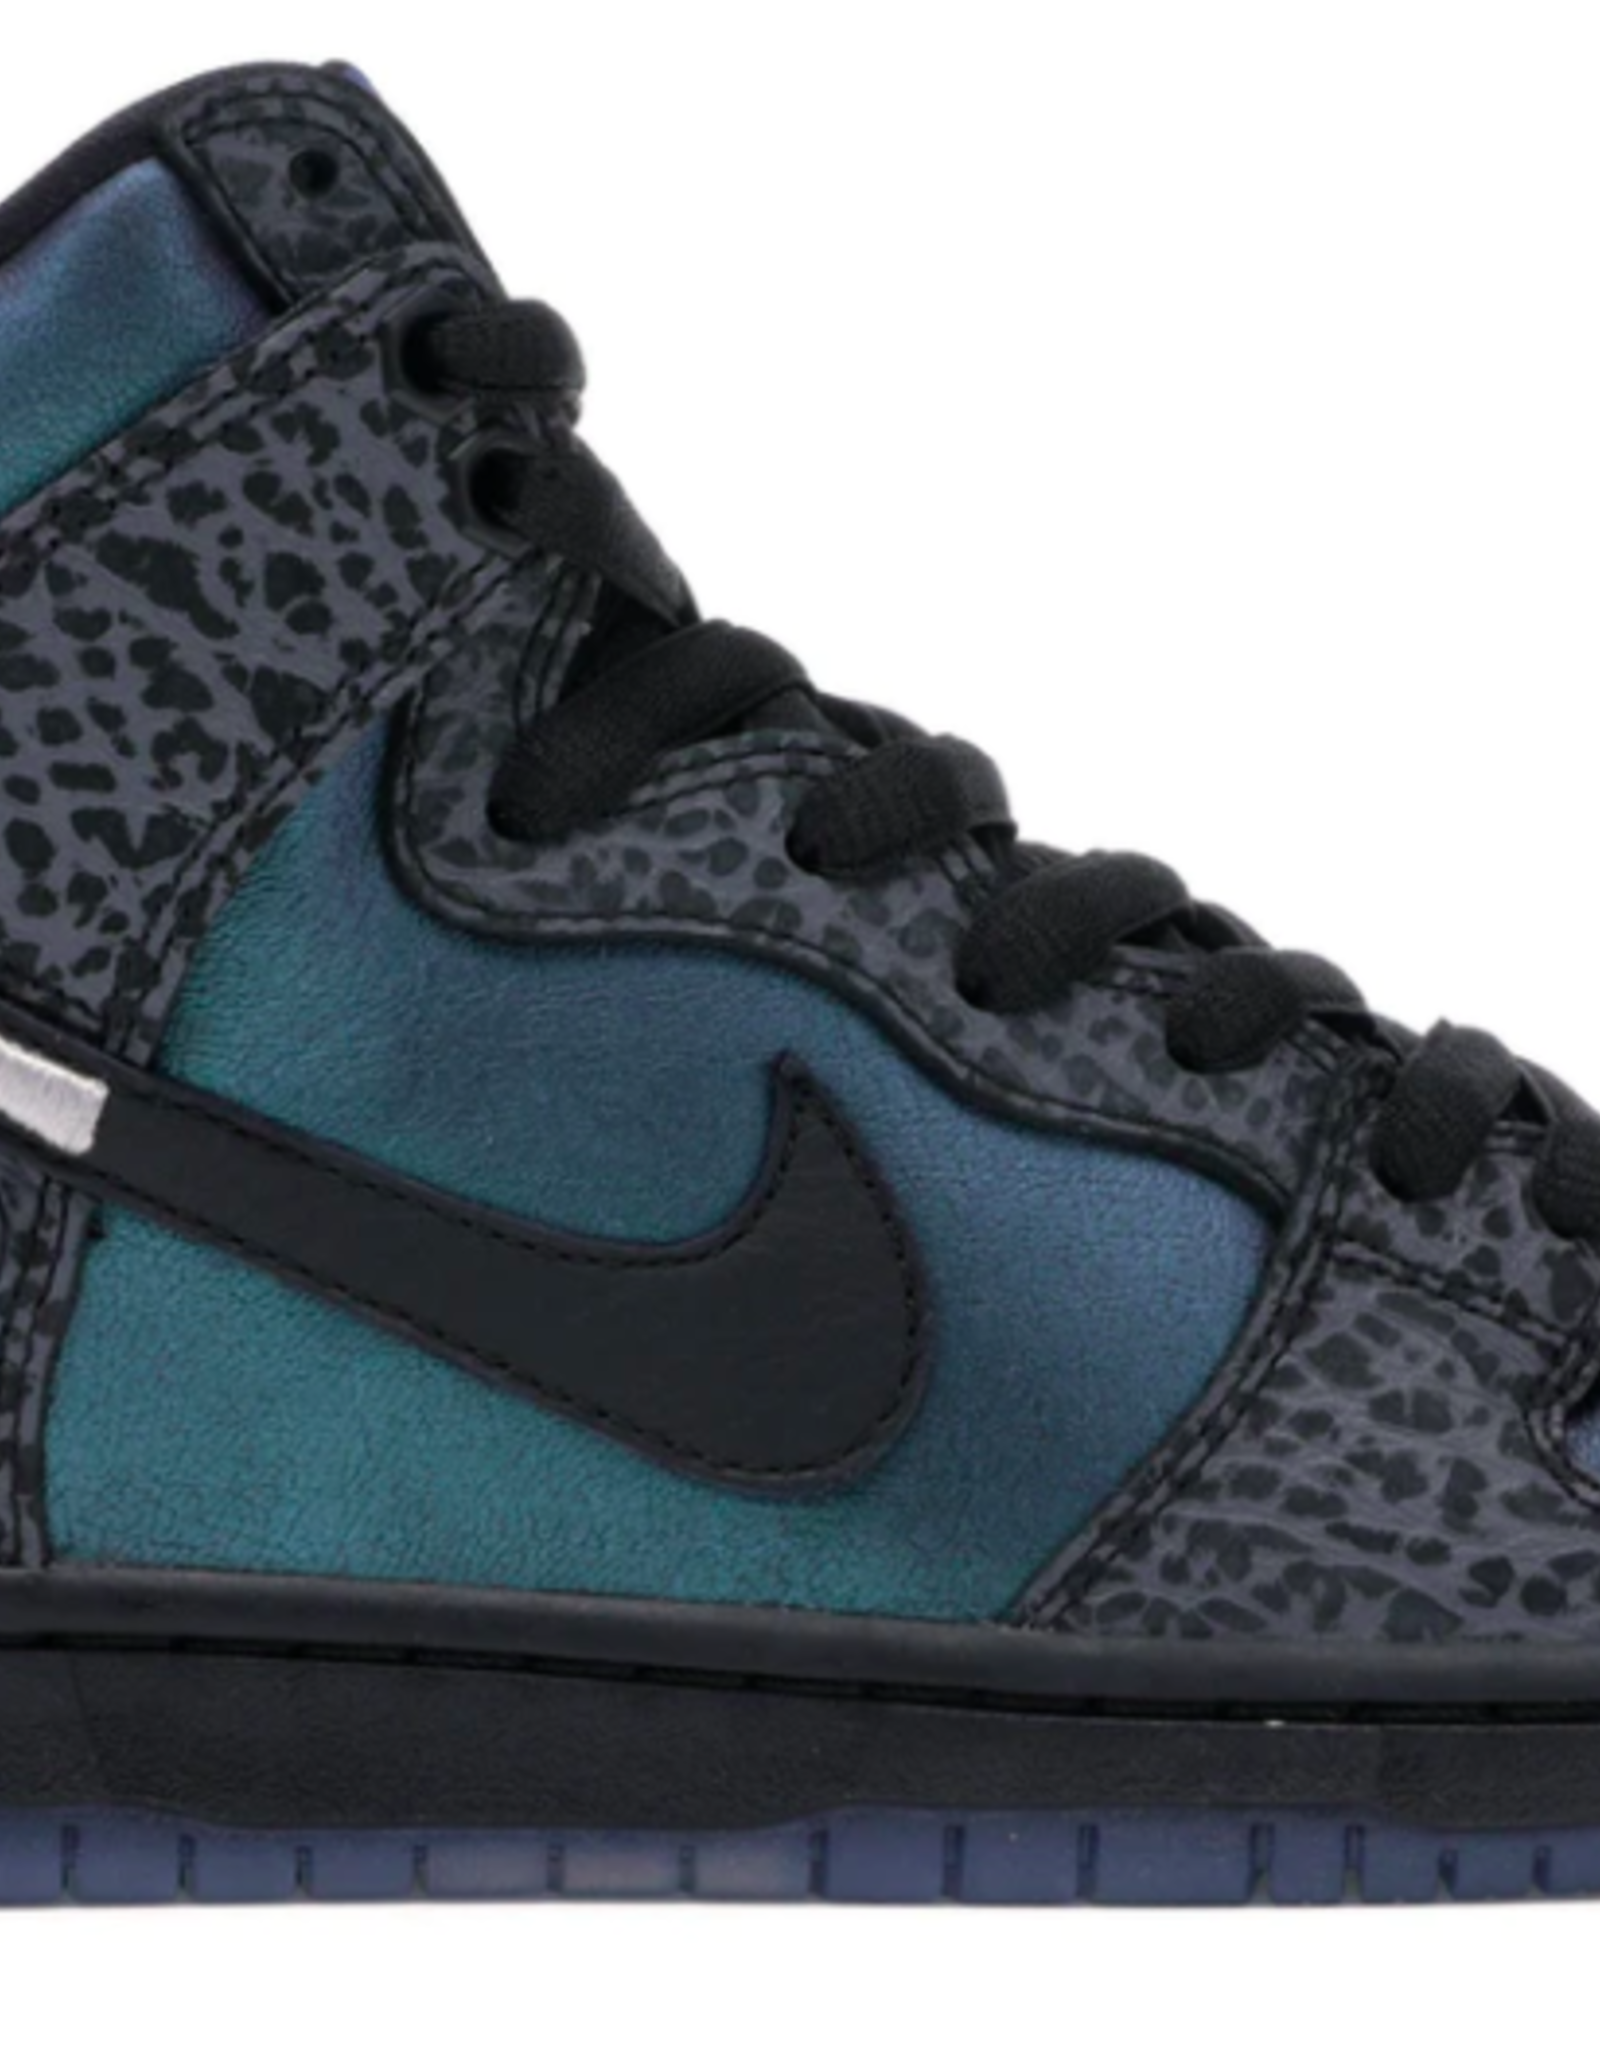 NIKE Nike SB Dunk High Black Sheep Hornet